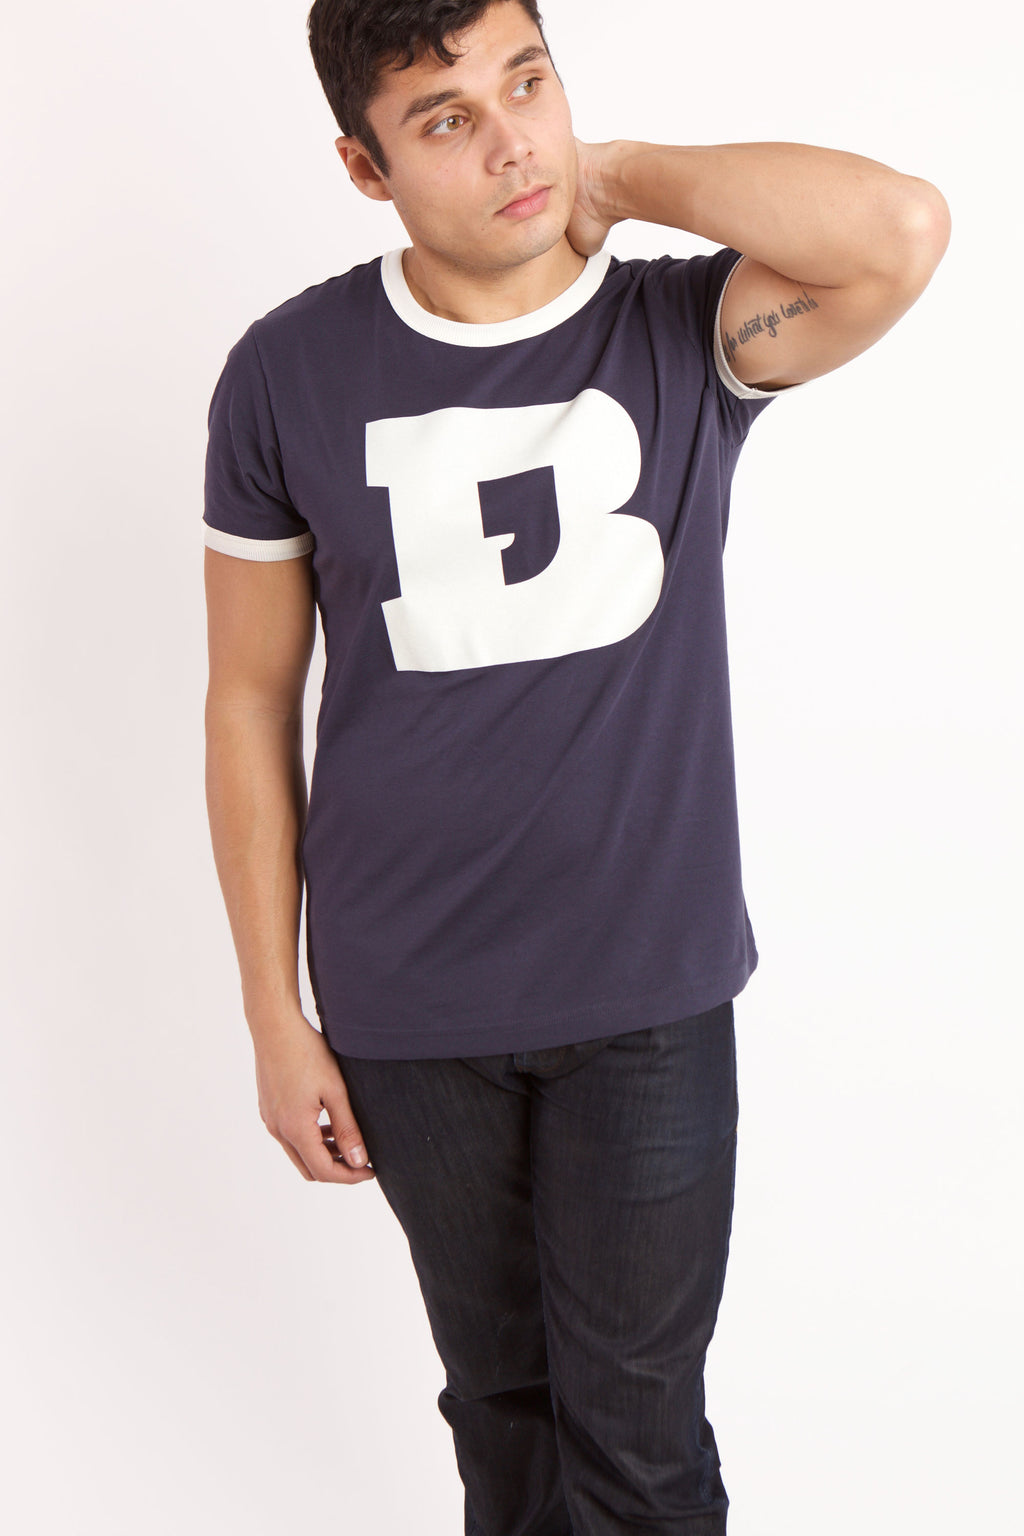 Comma B T-shirt on men's model with dark pants.  The model is holding up his left arm behind his head.